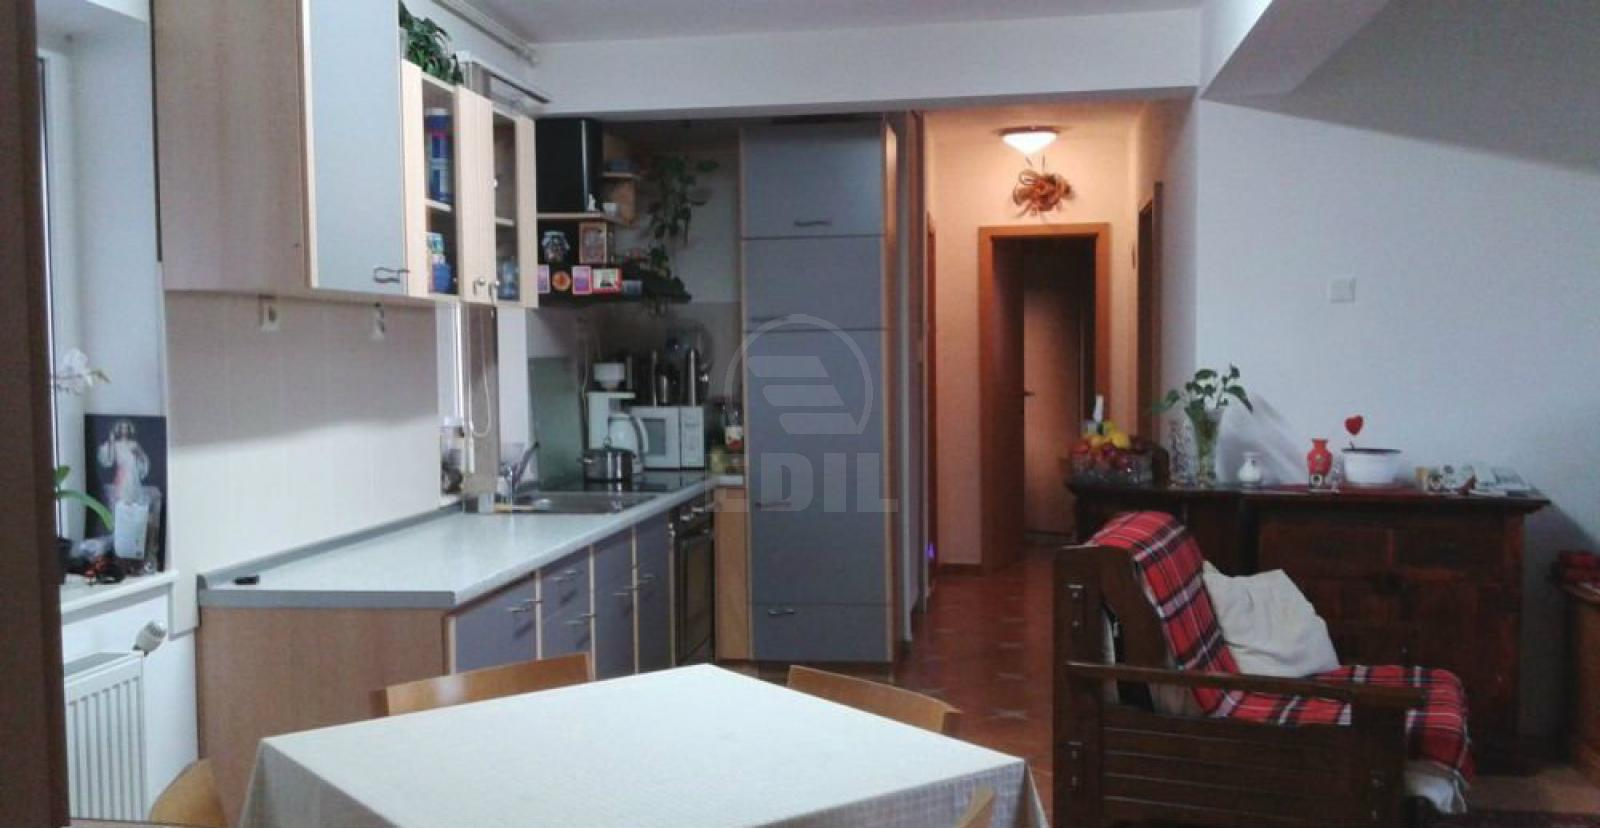 Apartment for sale 3 rooms, APCJ273577-3